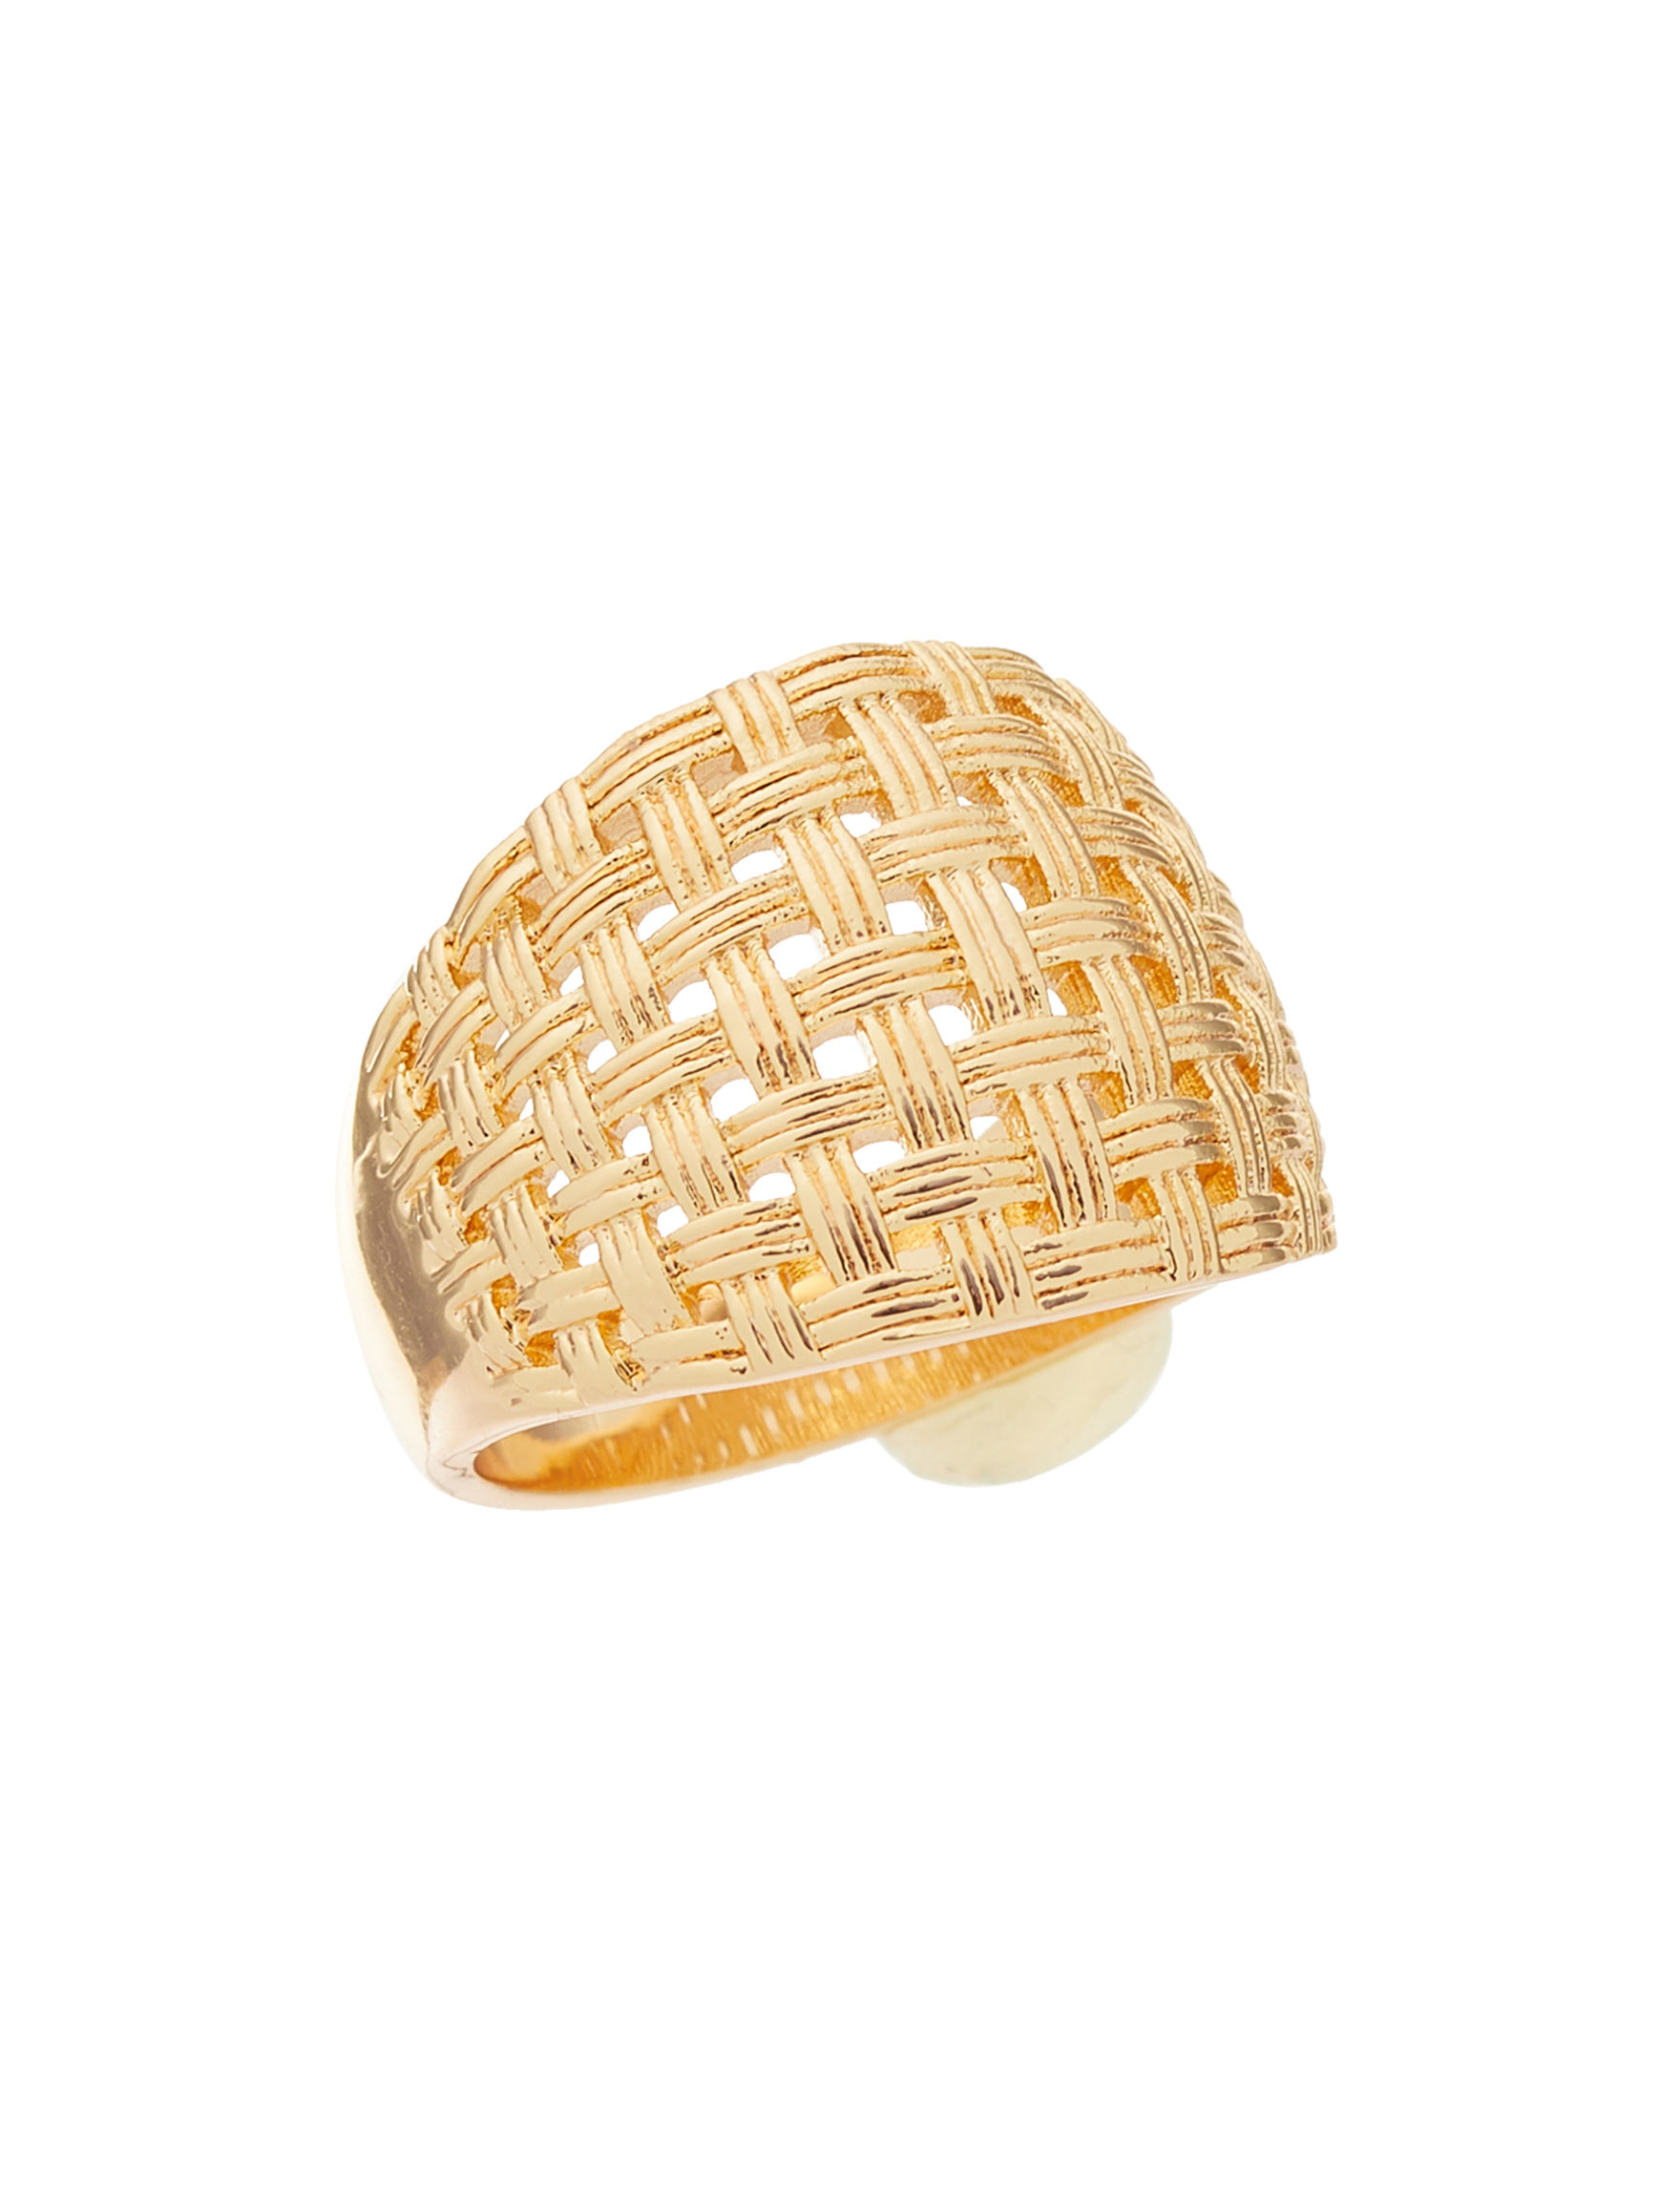 City by City Gold Rings Fashion Jewelry